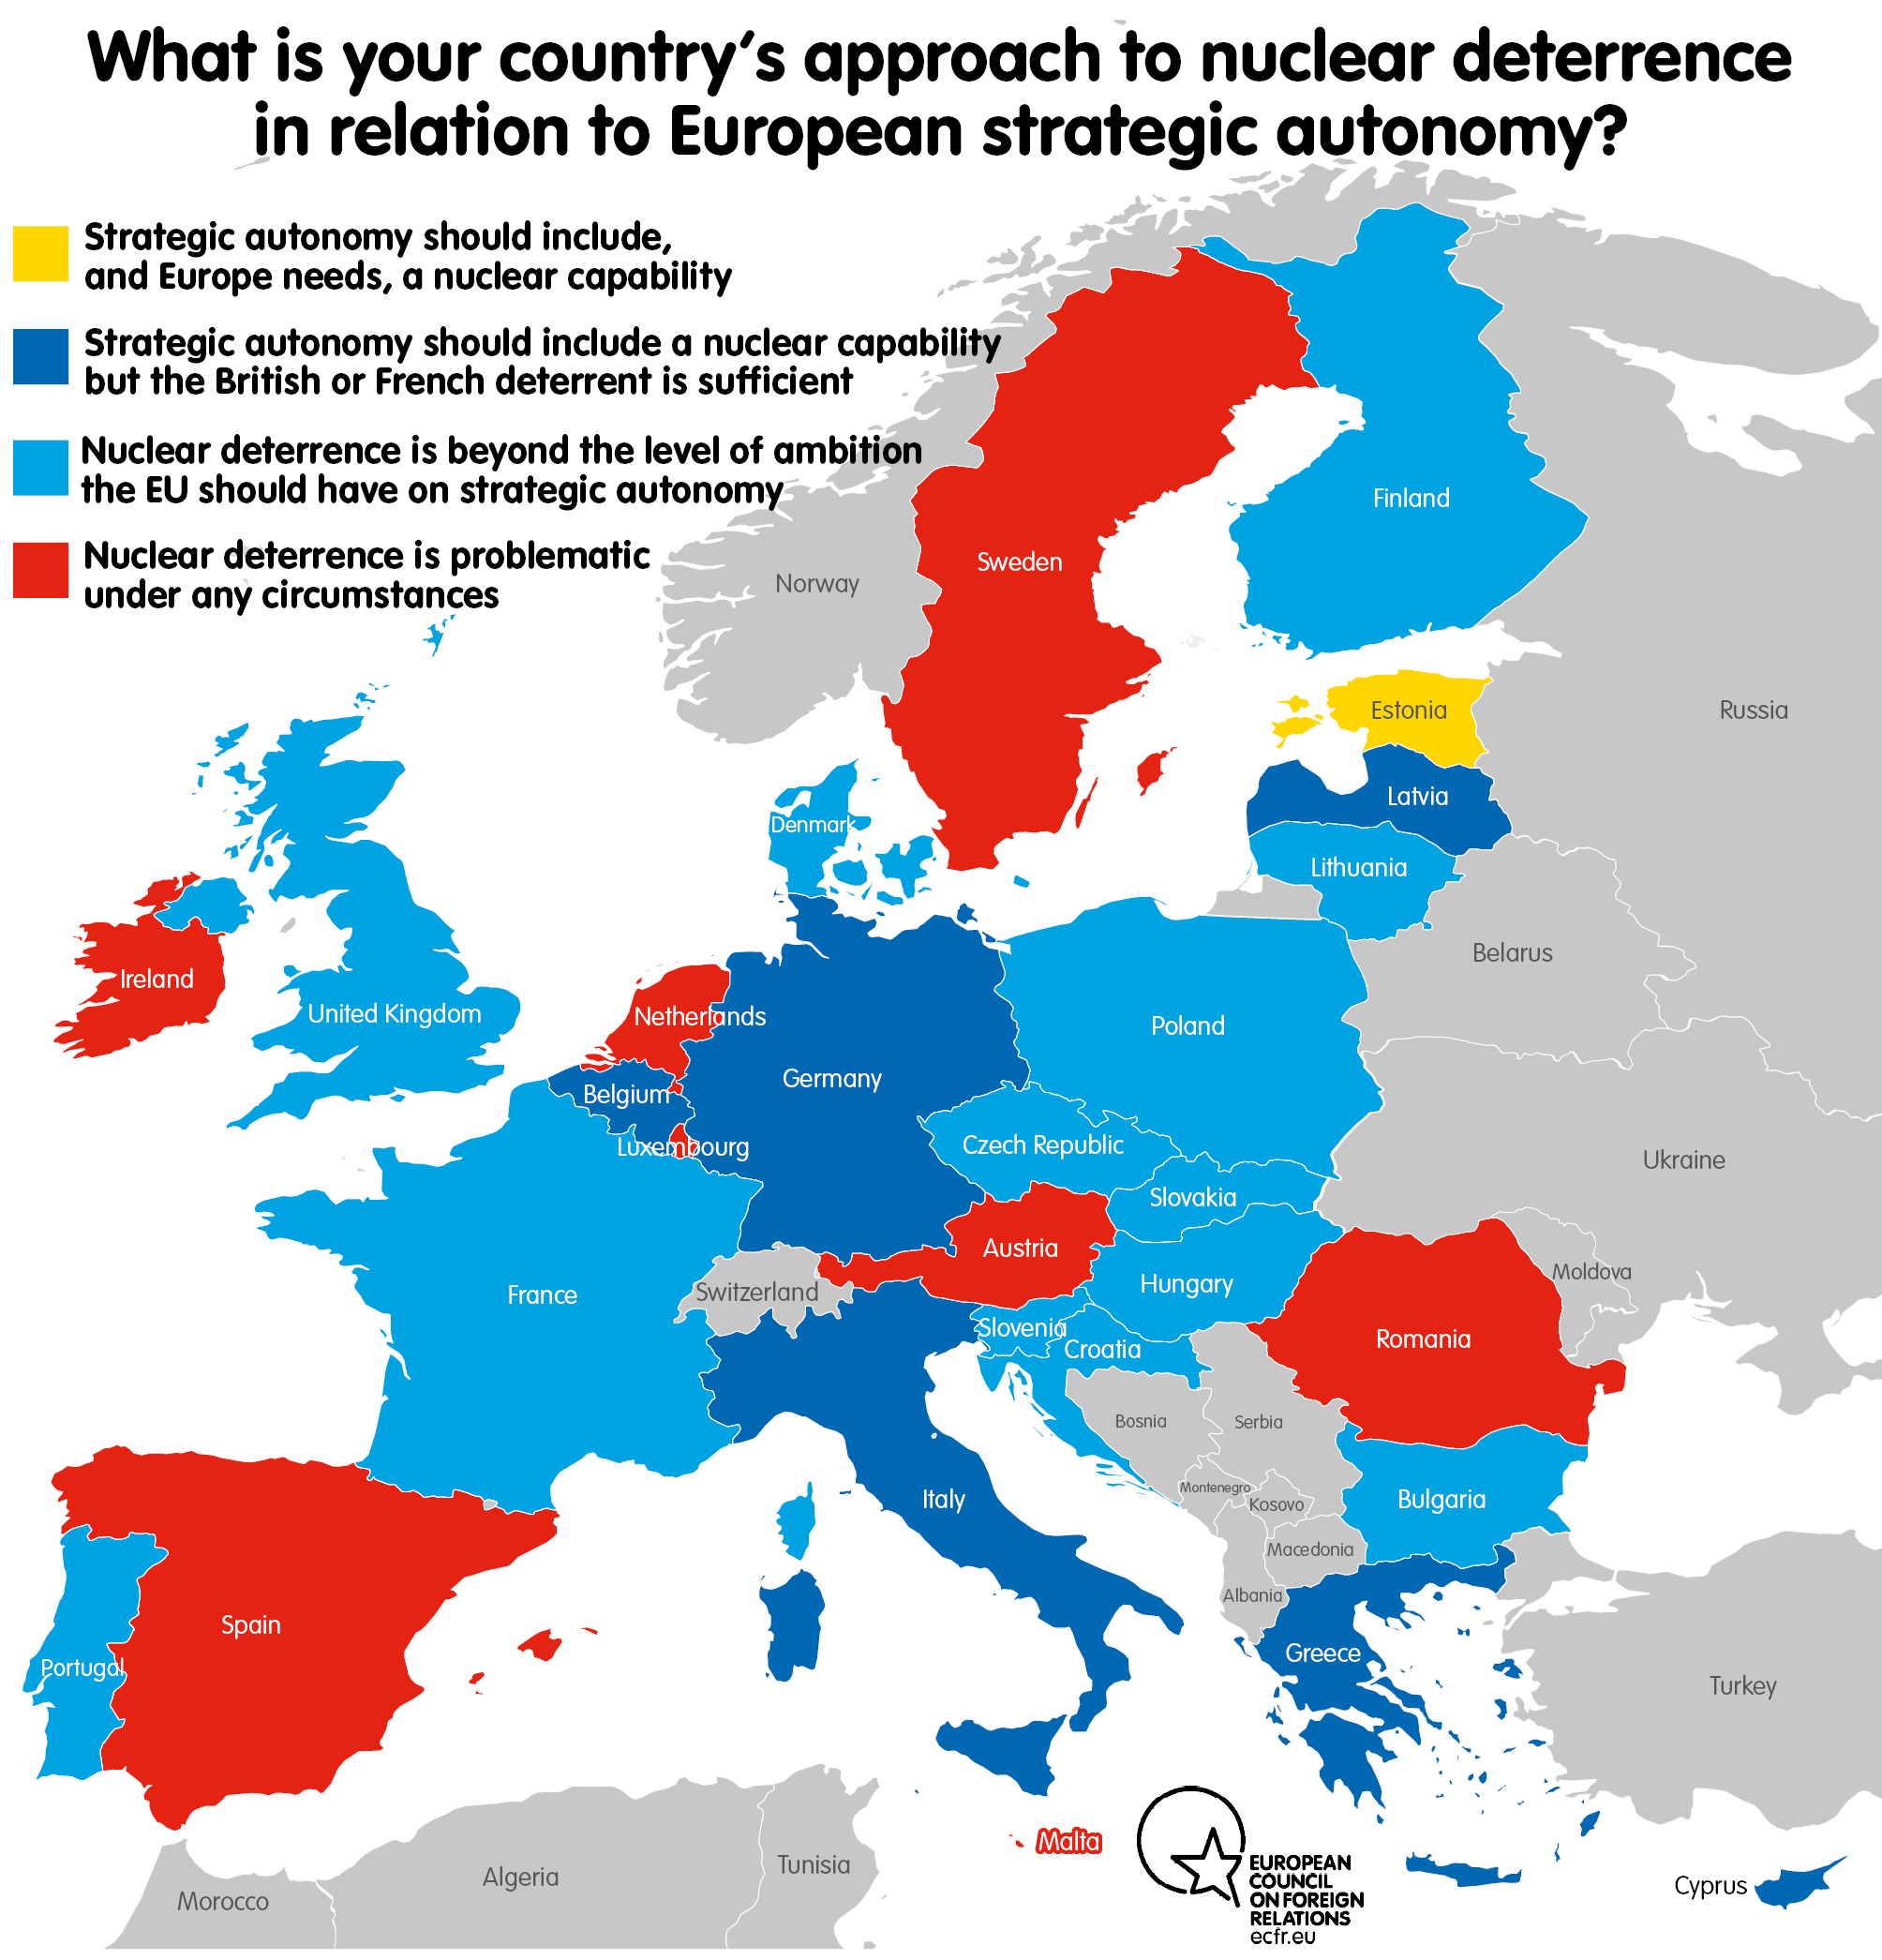 What is your country's approach to nuclear deterrence in relation to European Strategic Autonomy